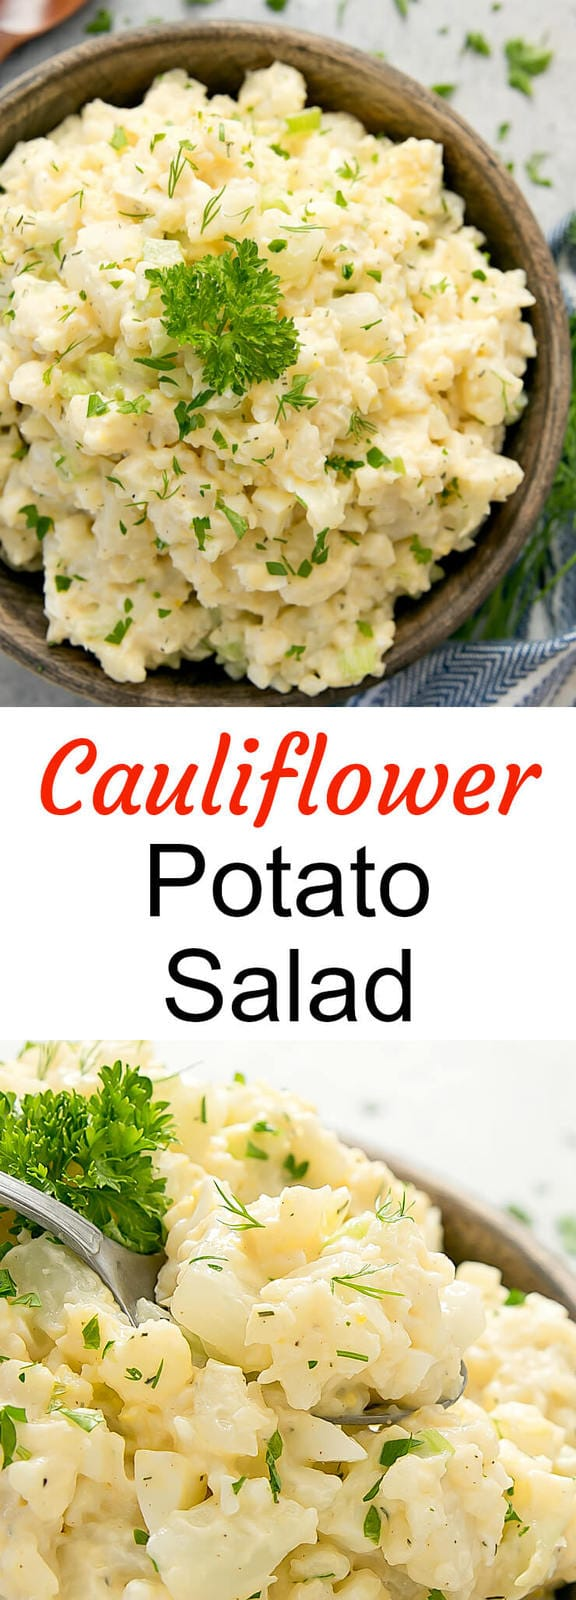 Cauliflower Potato Salad. A low carb version of potato salad using cauliflower instead.